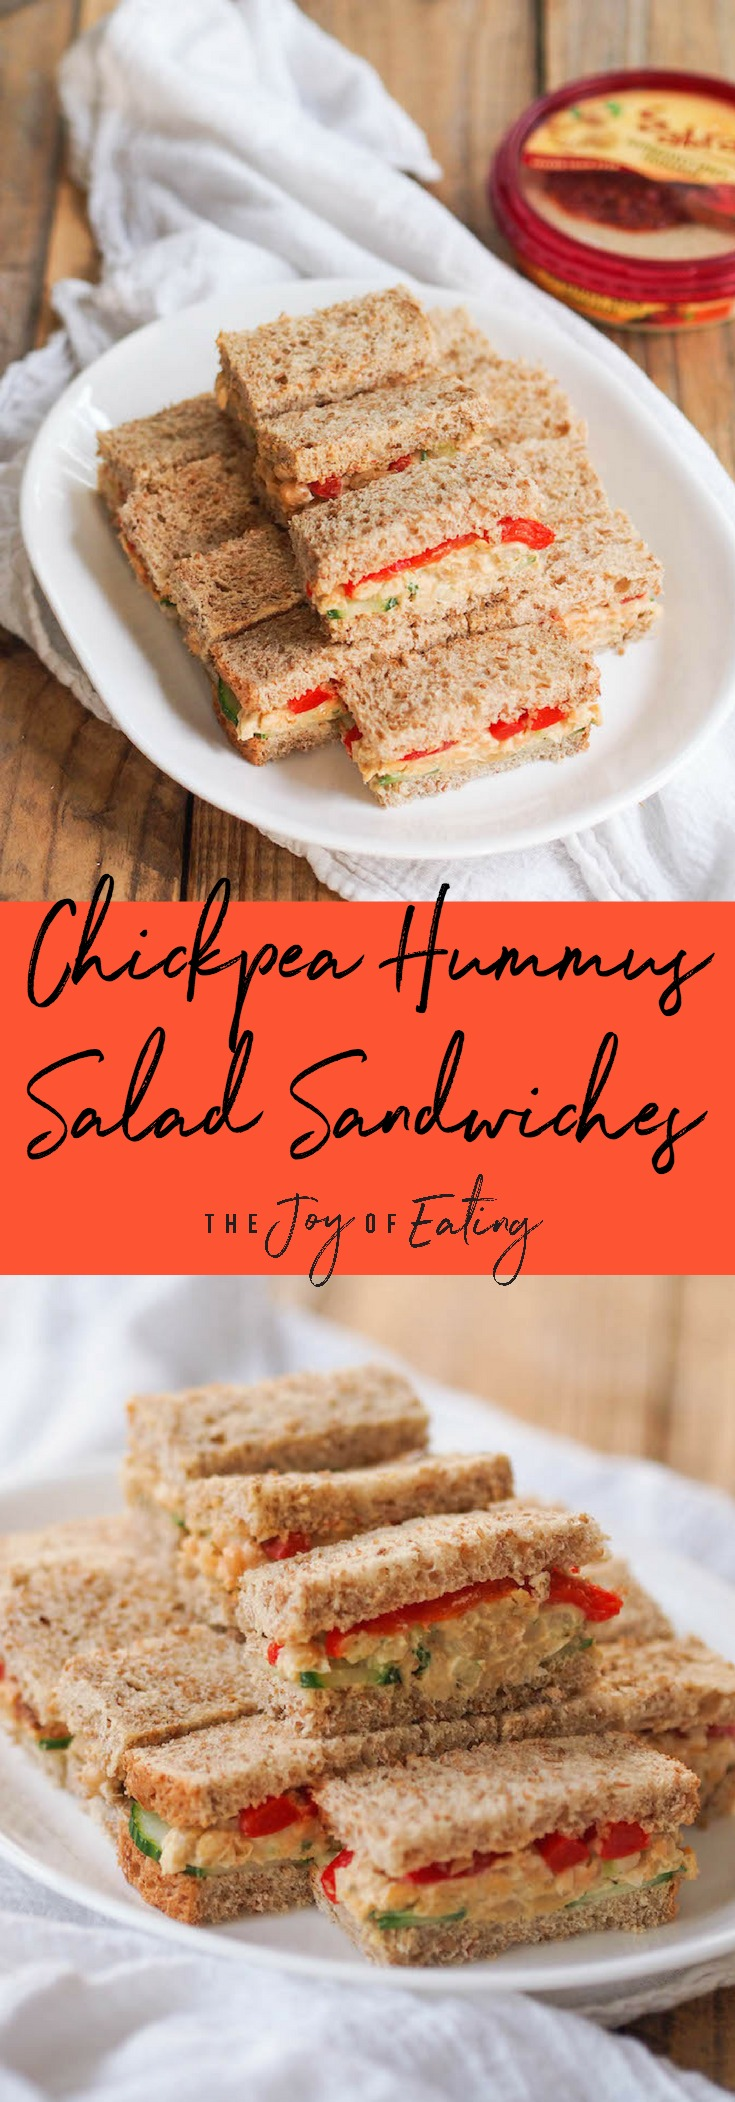 These vegan chickpea hummus salad sandwiches are perfect for tailgating! Swap mayo for creamy hummus! #tailgating #hummus #vegan #vegetarian #sandwich